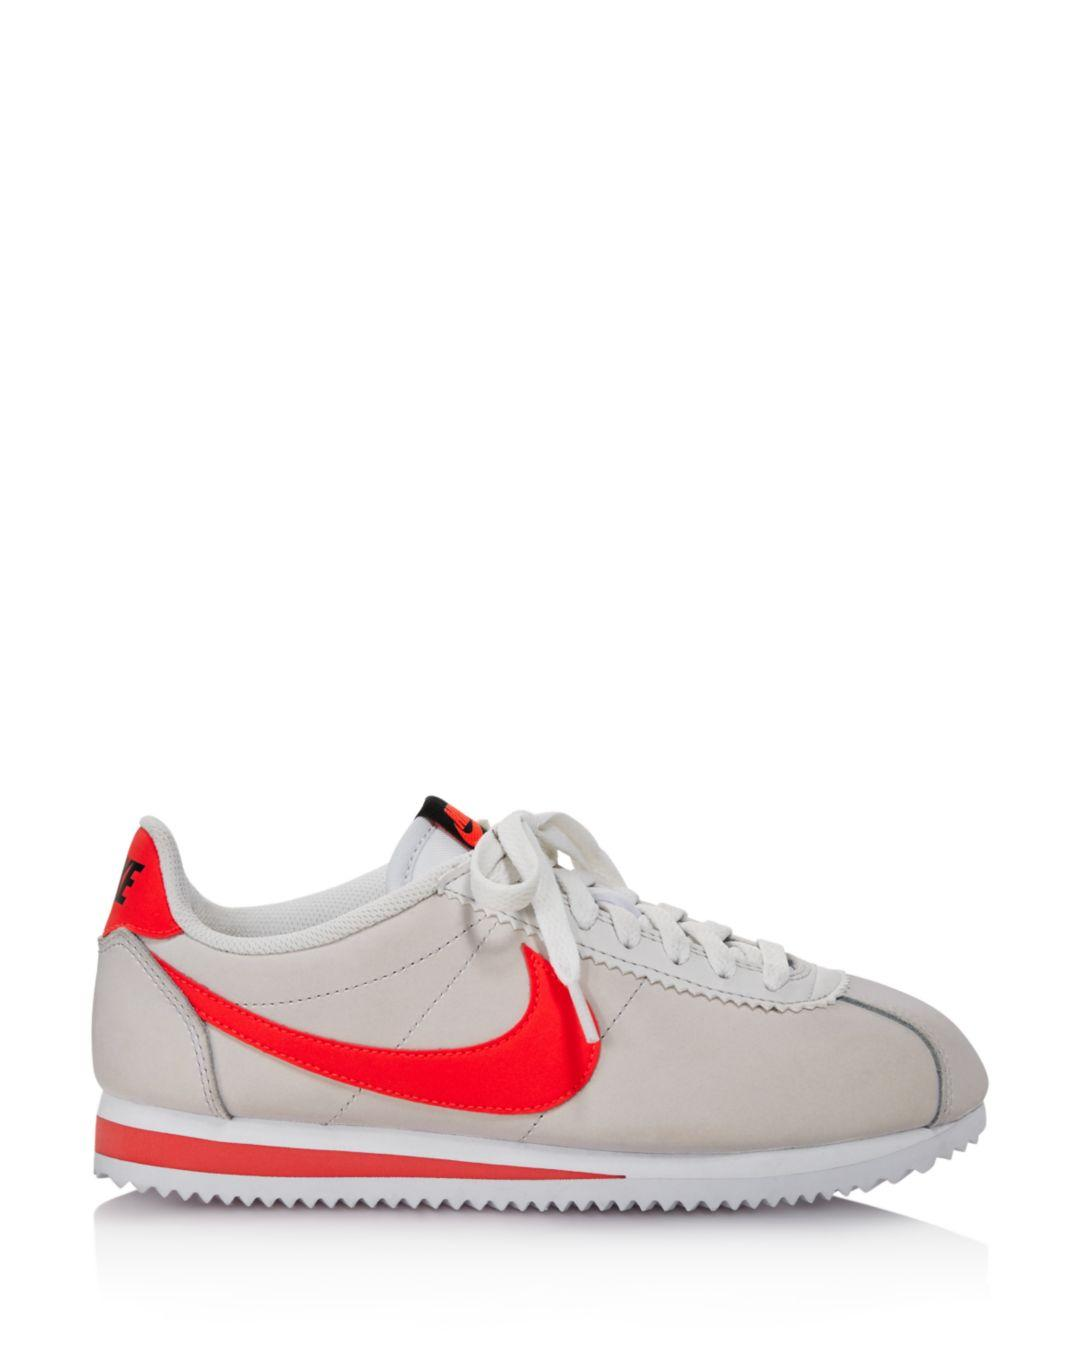 aedd36e16e7 Lyst - Nike Women s Classic Cortez Leather Lace Up Sneakers in White - Save  26%